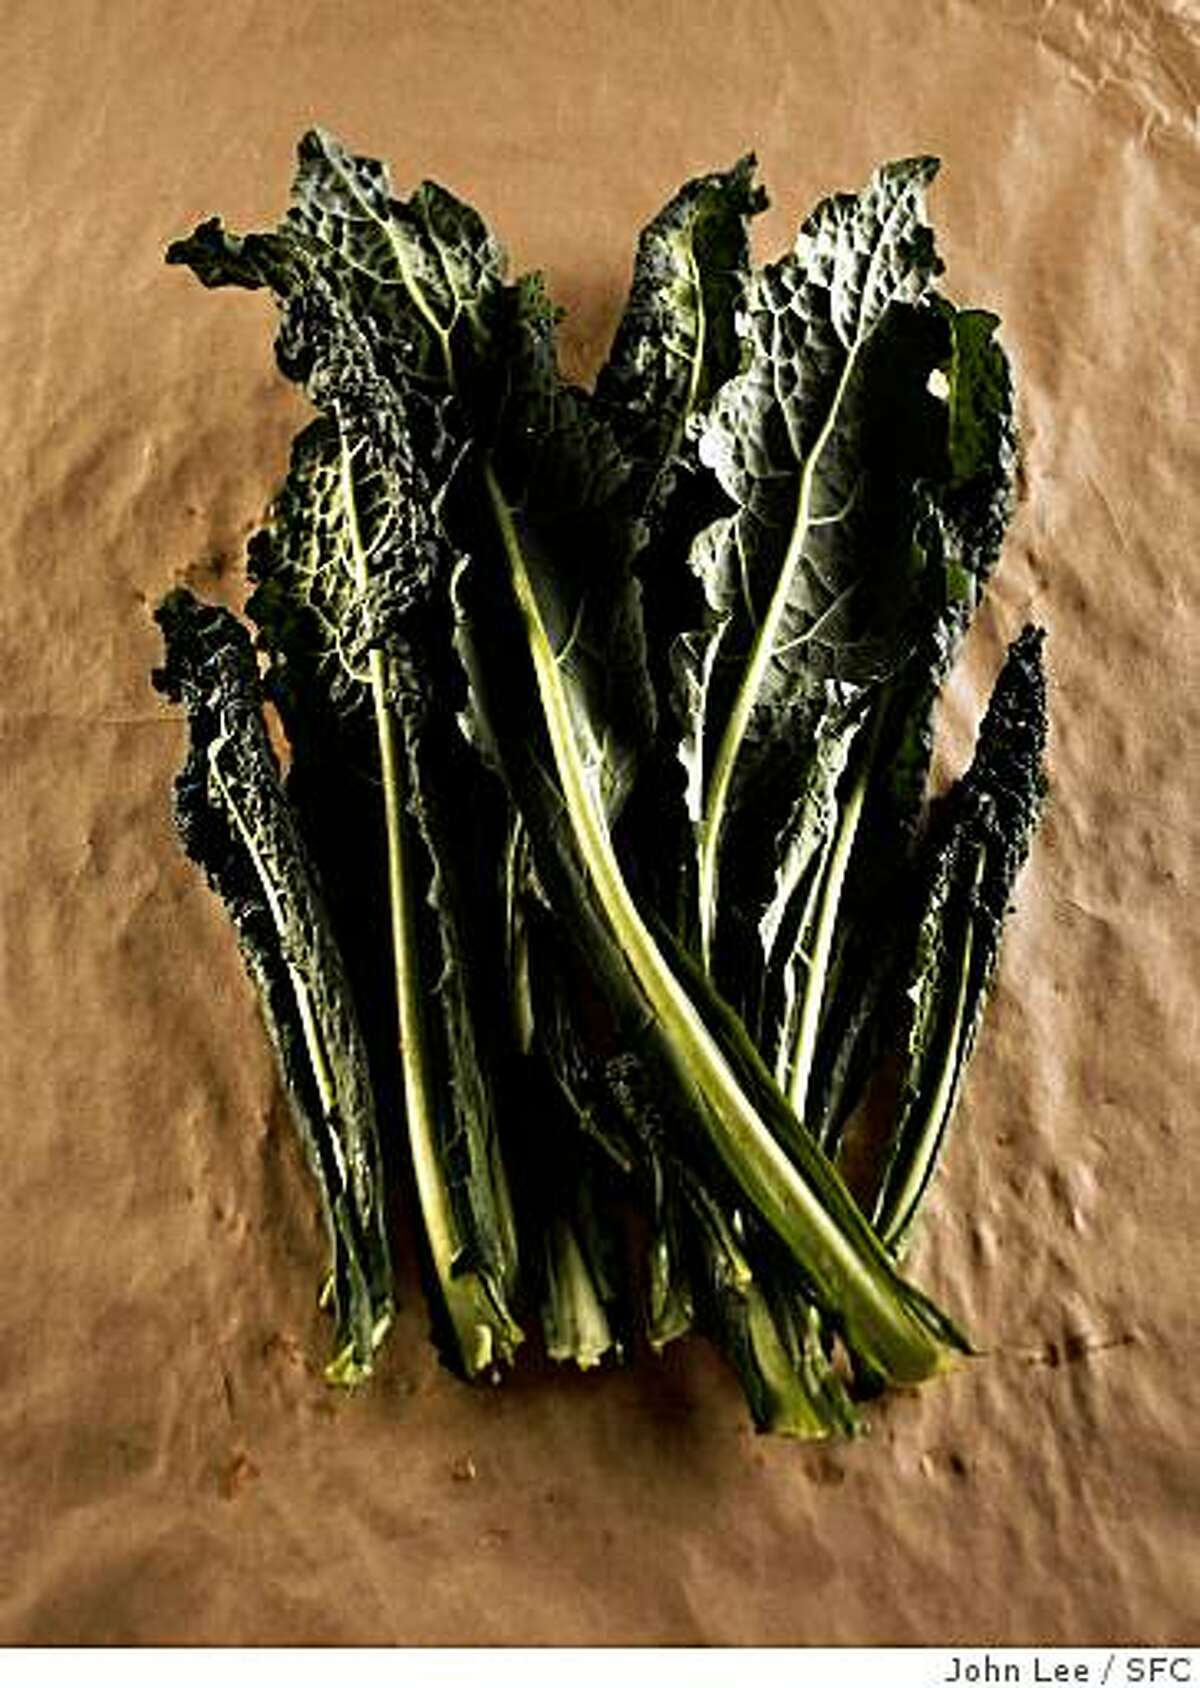 Kale didn't used to be as widely available as it is now.By JOHN LEE/SPECIAL TO THE CHRONICLE